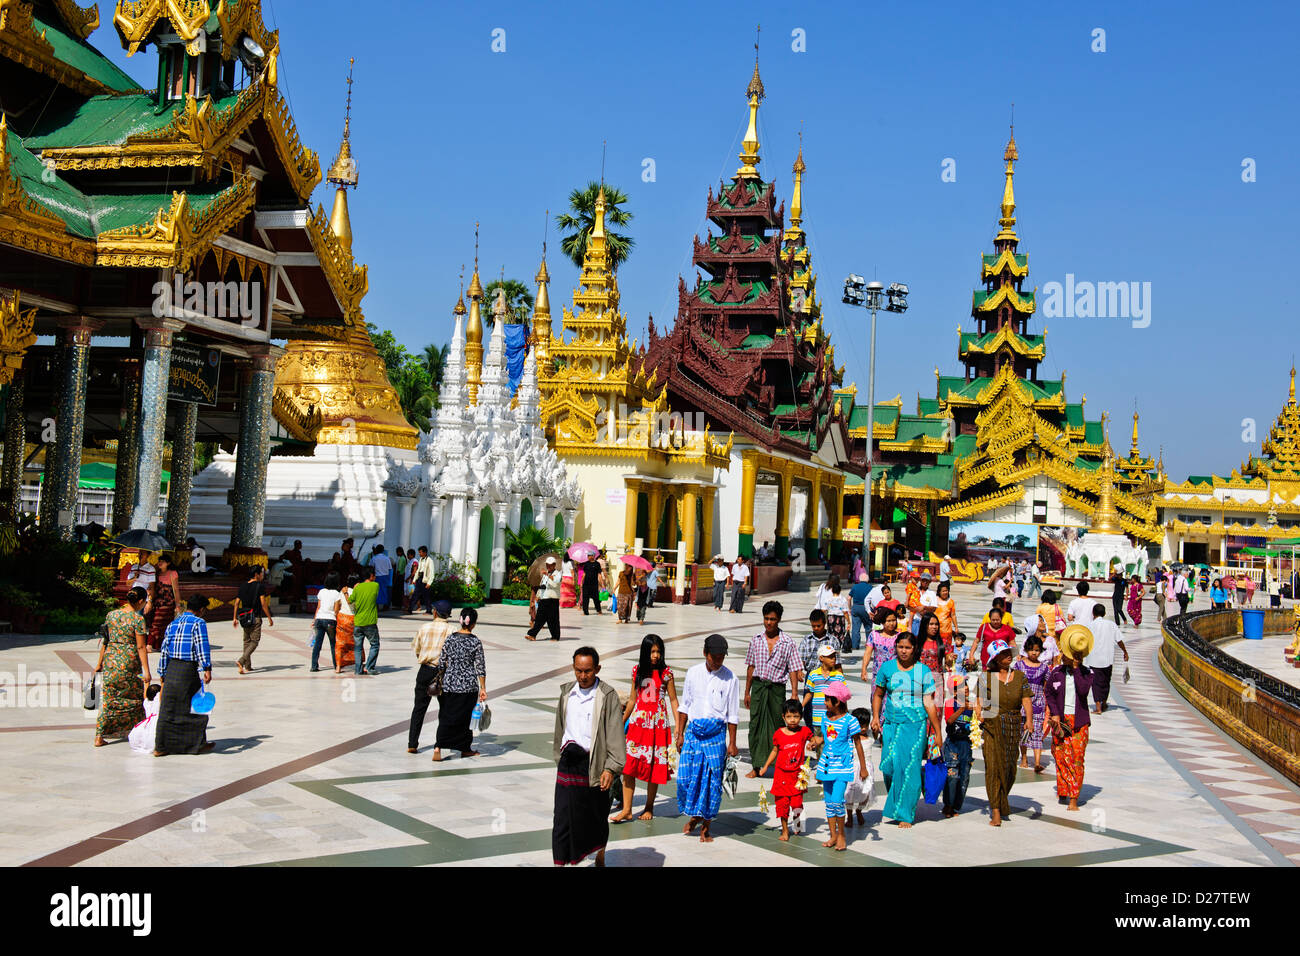 Shwedagon Pagoda,Buddhas,Buddhism Offerings at Planetary Posts,Outlying Buildings,Buddhist Bells,Yangon,Myanmar,Rangoon,Burma Stock Photo